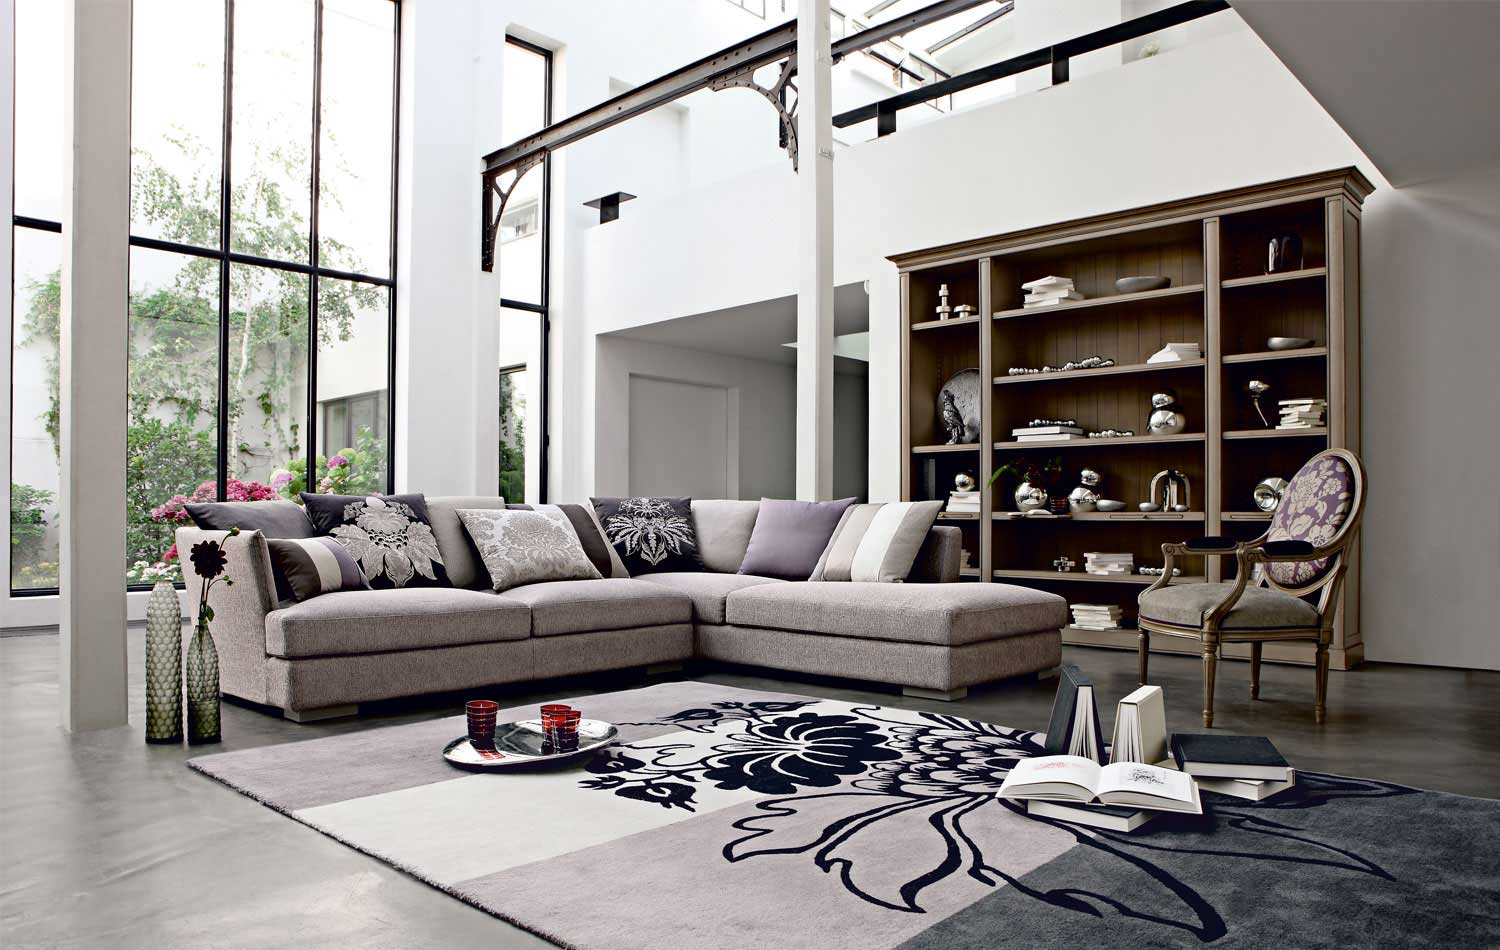 Tapis Blanc Gris Living Room Inspiration: 120 Modern Sofas By Roche Bobois